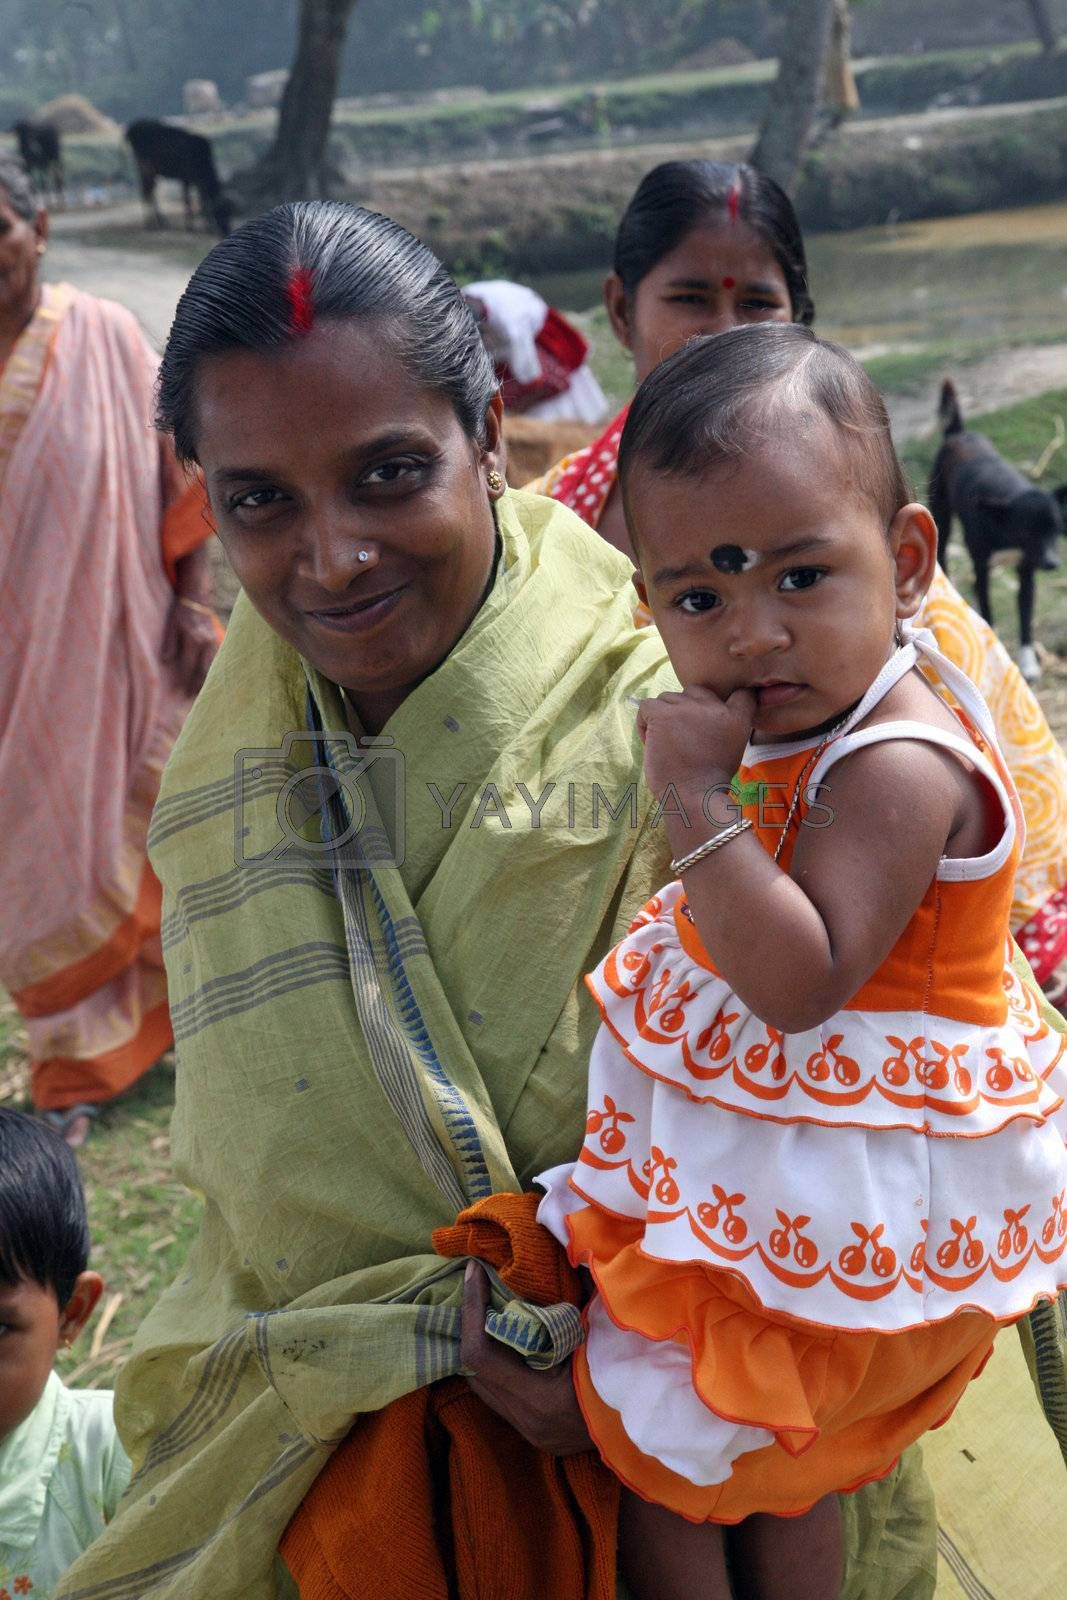 SUNDARBANDS, WEST BENGAL, INDIA - JANUARY 14: mother carries the little girl Sabita Bisvas, 2, to Mass in the village with the Christian majority in Sundarbans, West Bengal, India on January 14, 2009.